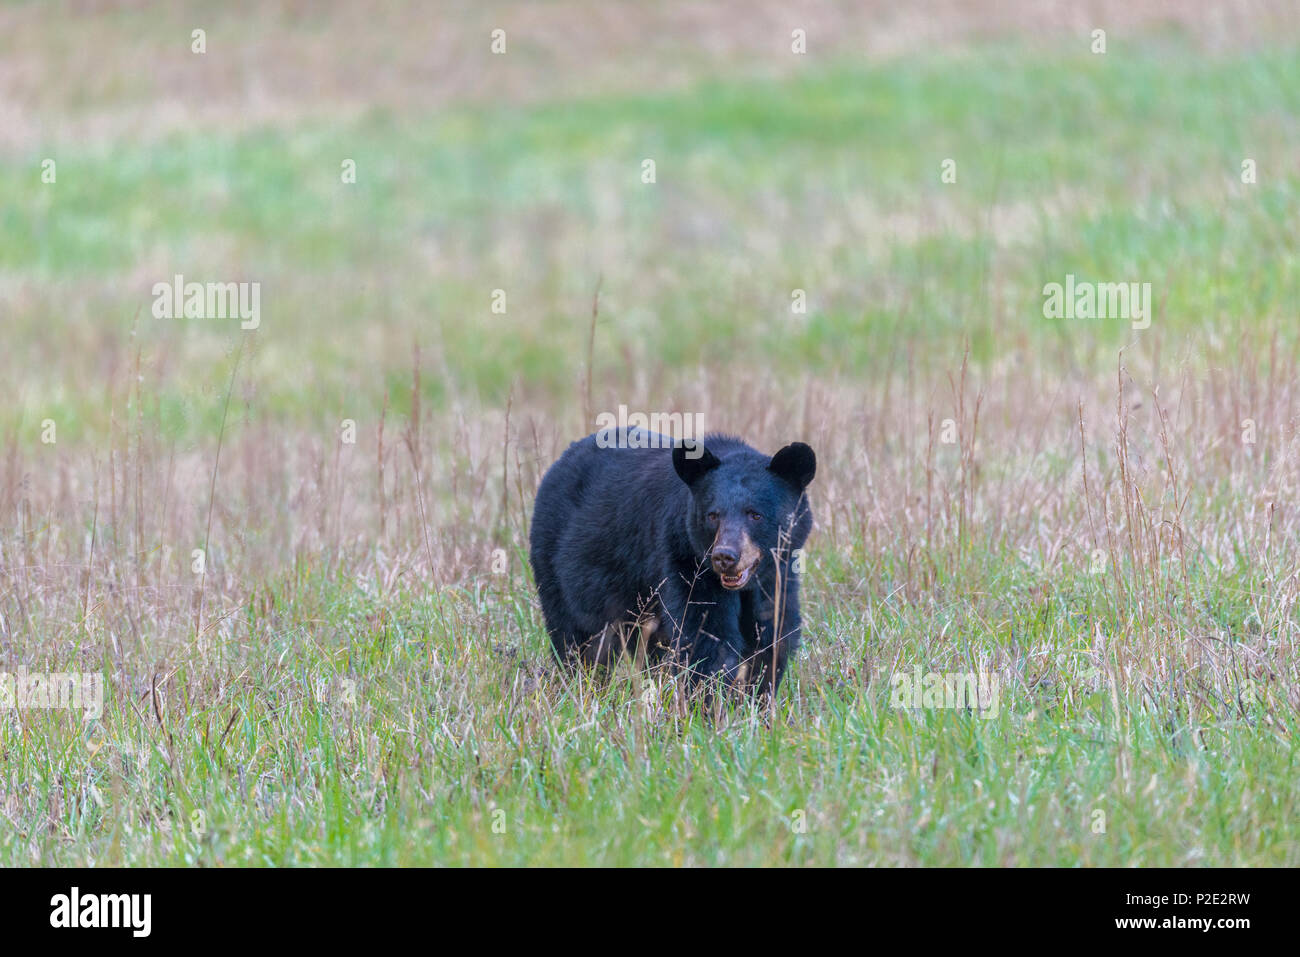 A North American Black Bear standing in a field in the Smoky Mountains with copy space.  He is facing the camera. - Stock Image